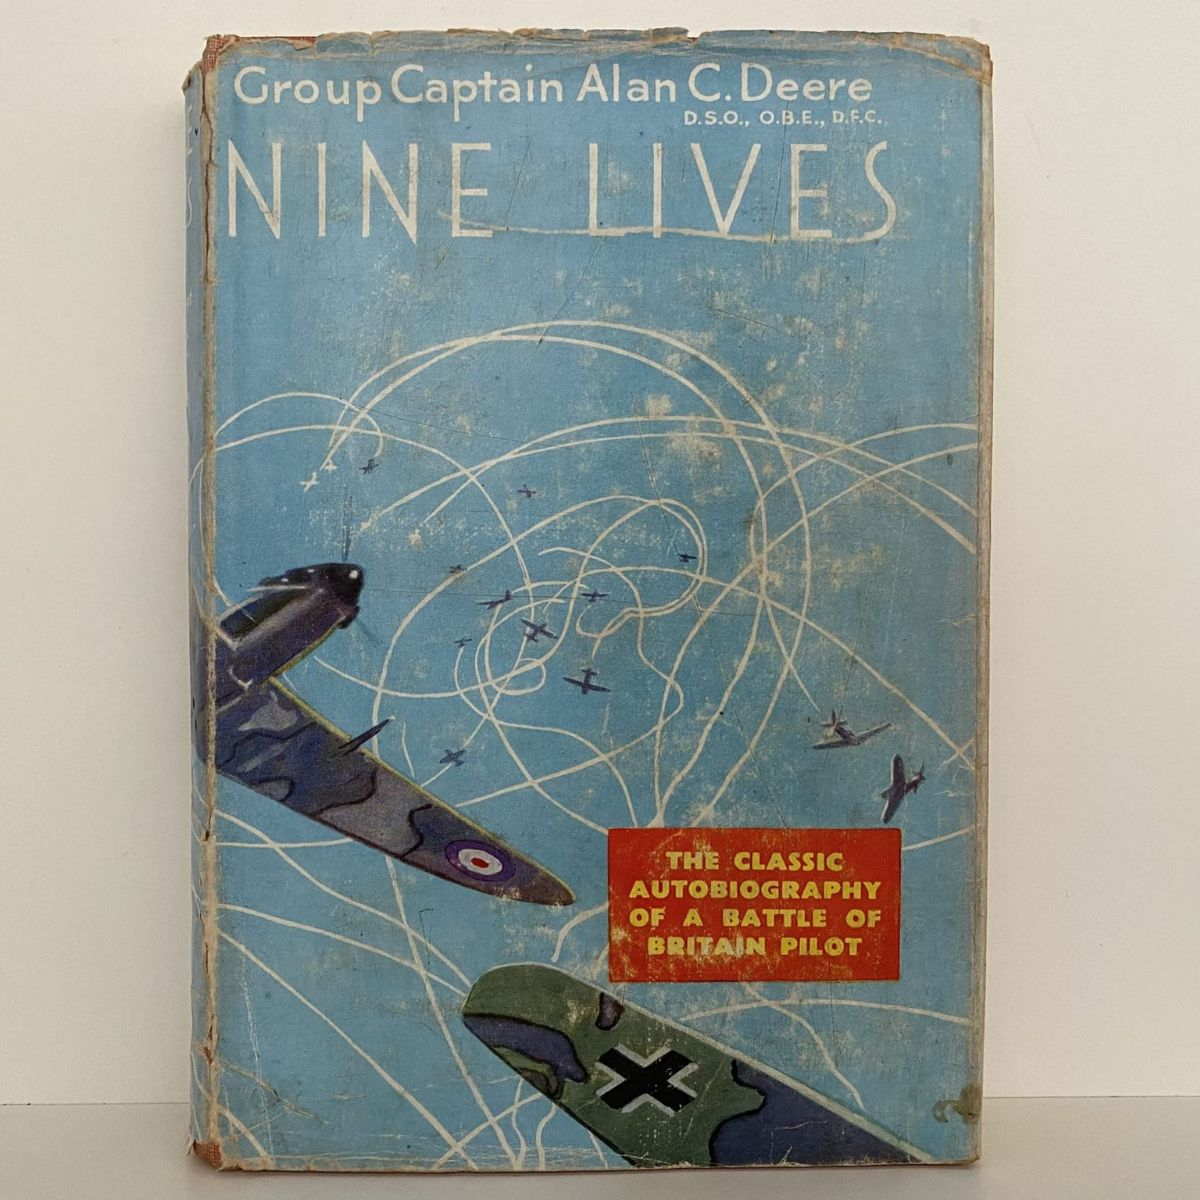 NINE LIVES: The Classic Autobiography of a Battle of Britain Pilot